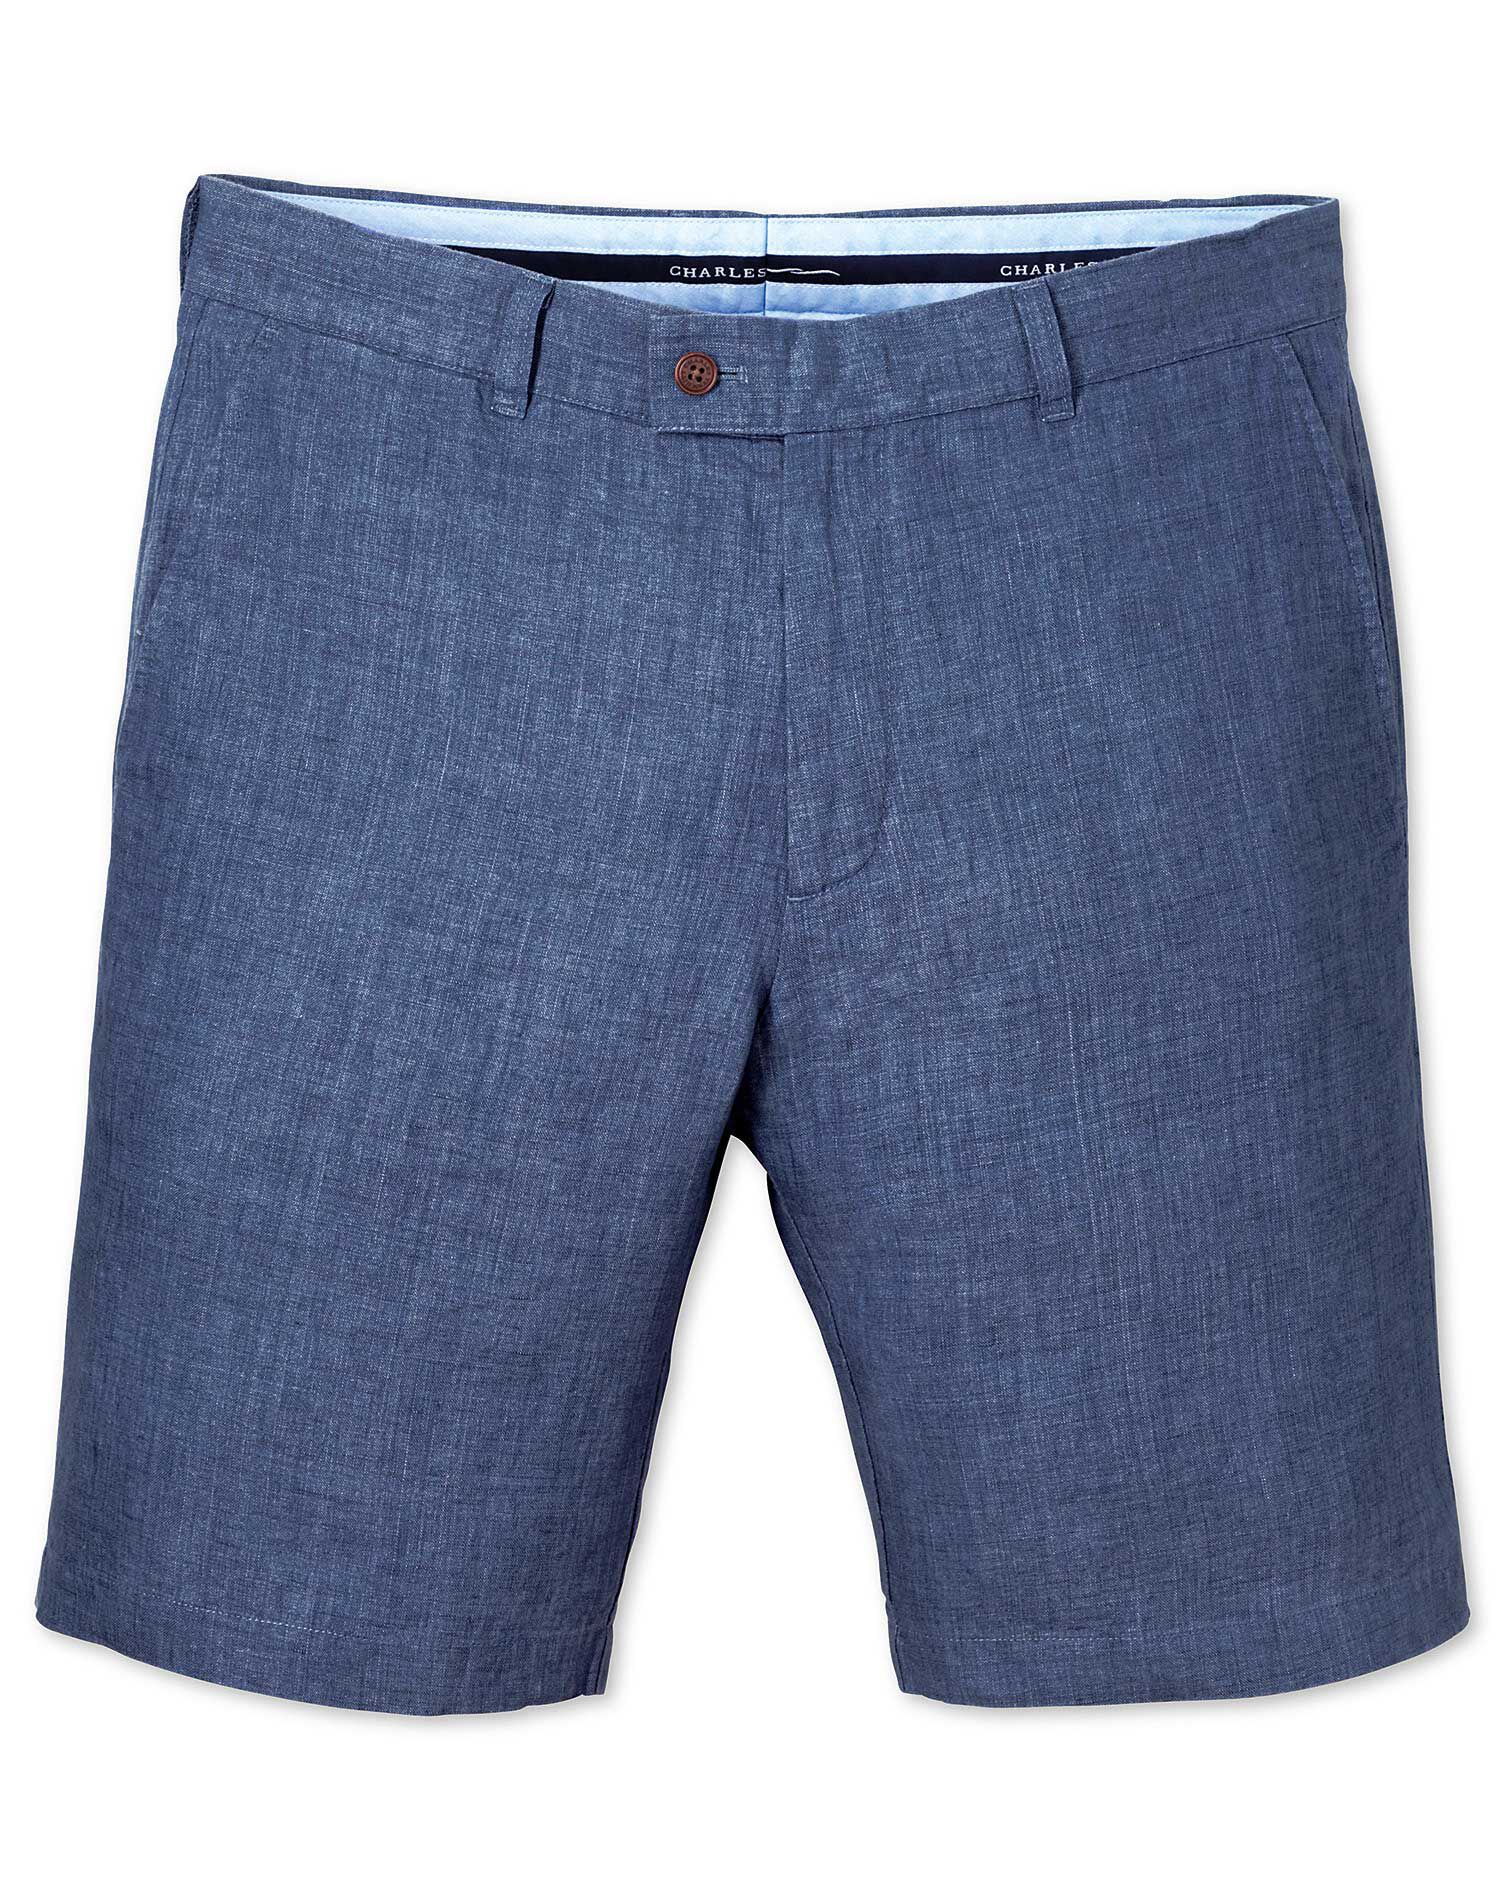 Blue Slim Fit Linen Shorts Size 36 by Charles Tyrwhitt